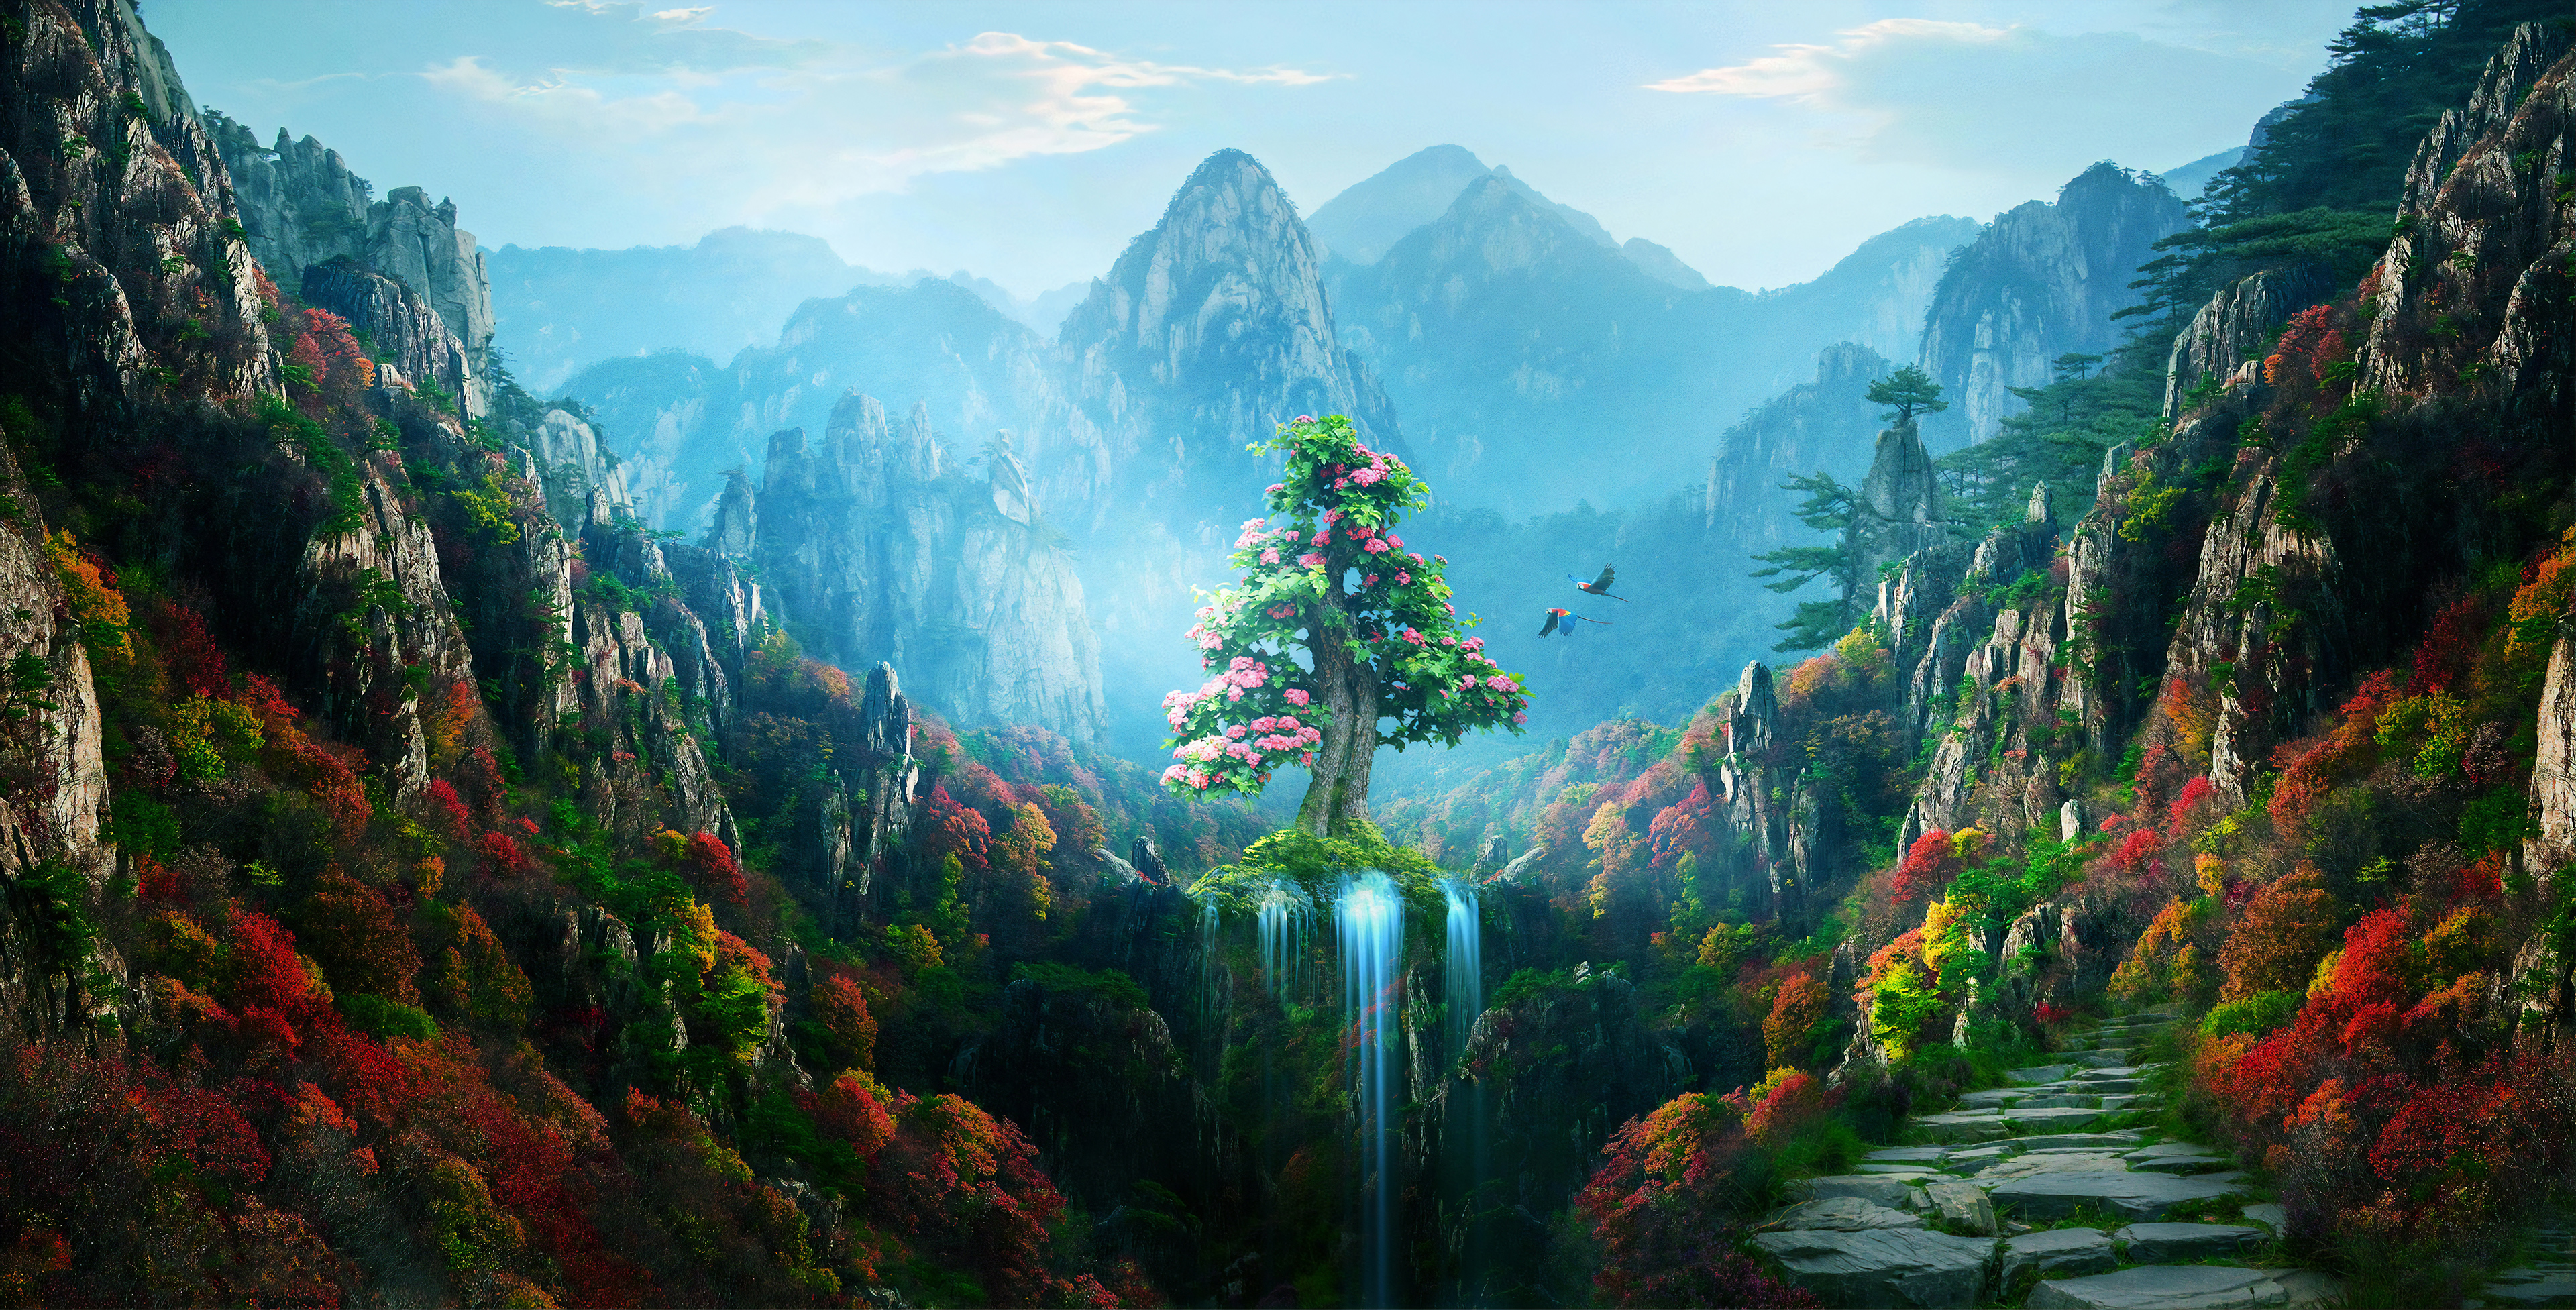 Spring autumn colorful nature magical forest 4k hd artist 4k wallpapers images backgrounds - 4k colorful wallpaper ...